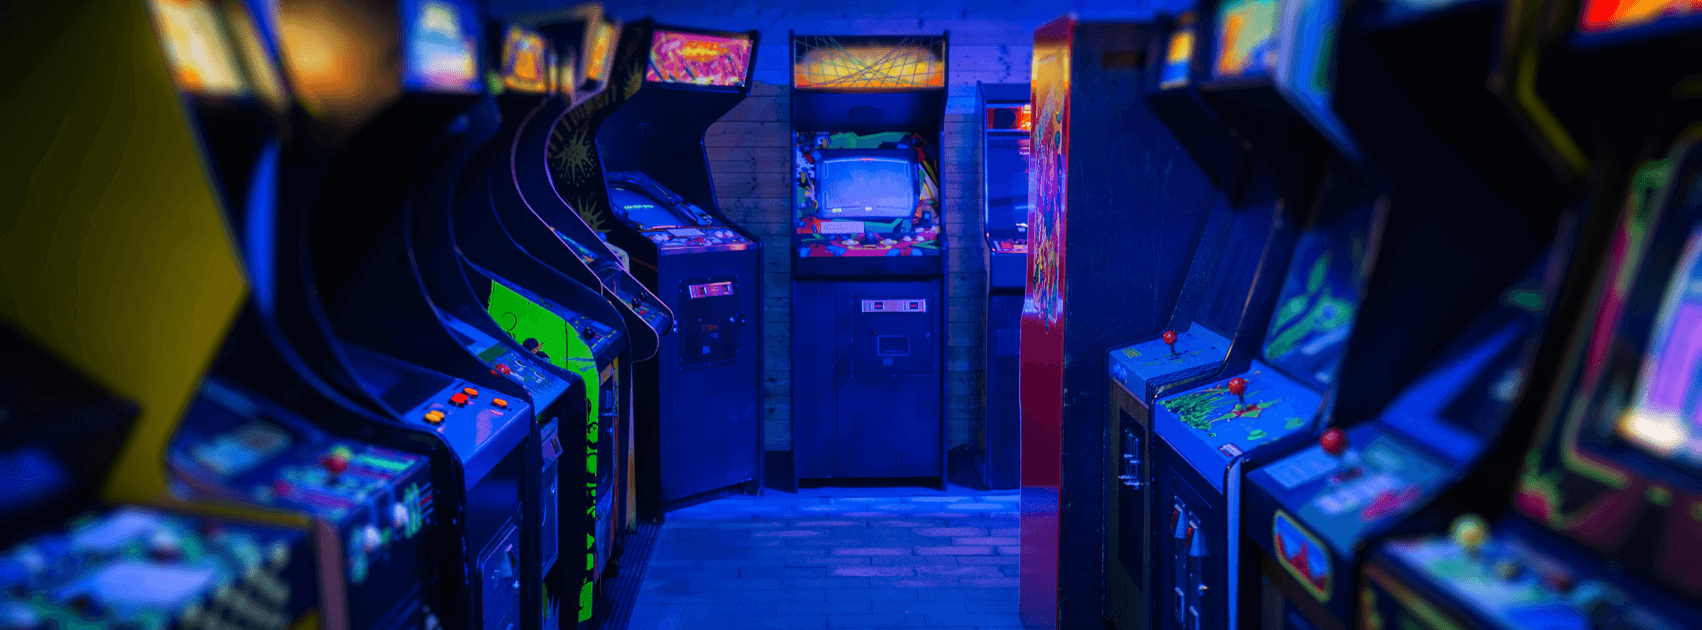 Retro arcade machines with most popular games like pacman, galaga, donkey kong and many more.